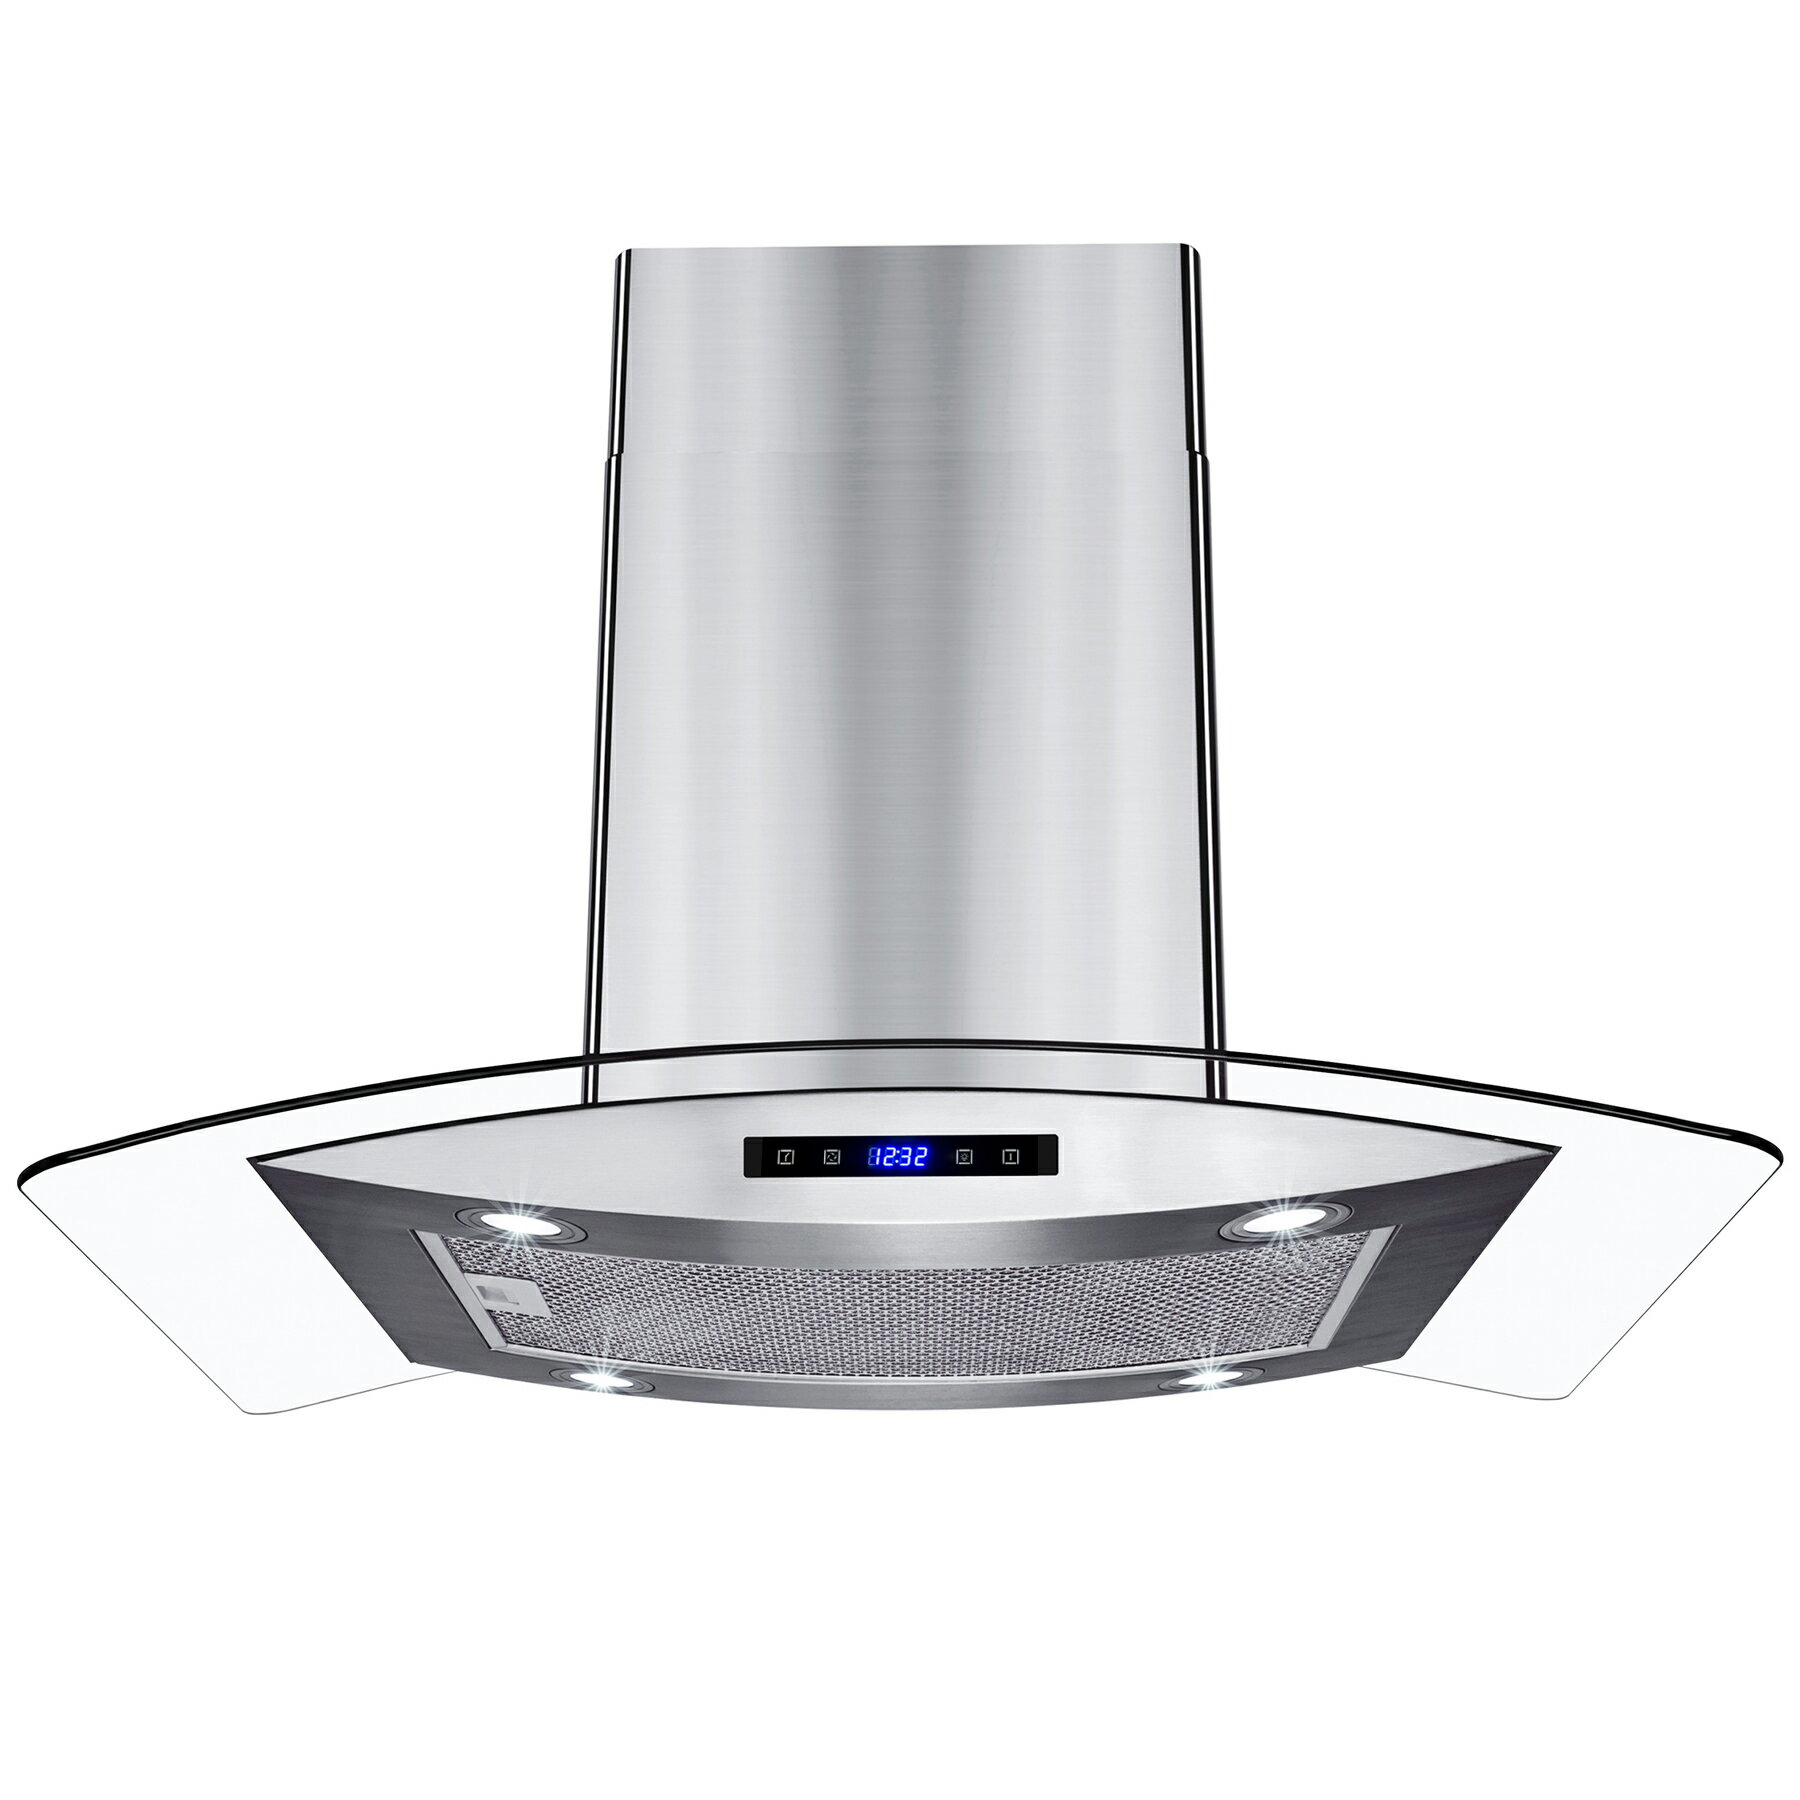 Akdy 30 Island Mount Stainless Steel Tempered Gl Touch Panel Kitchen Range Hood Cooking Fan